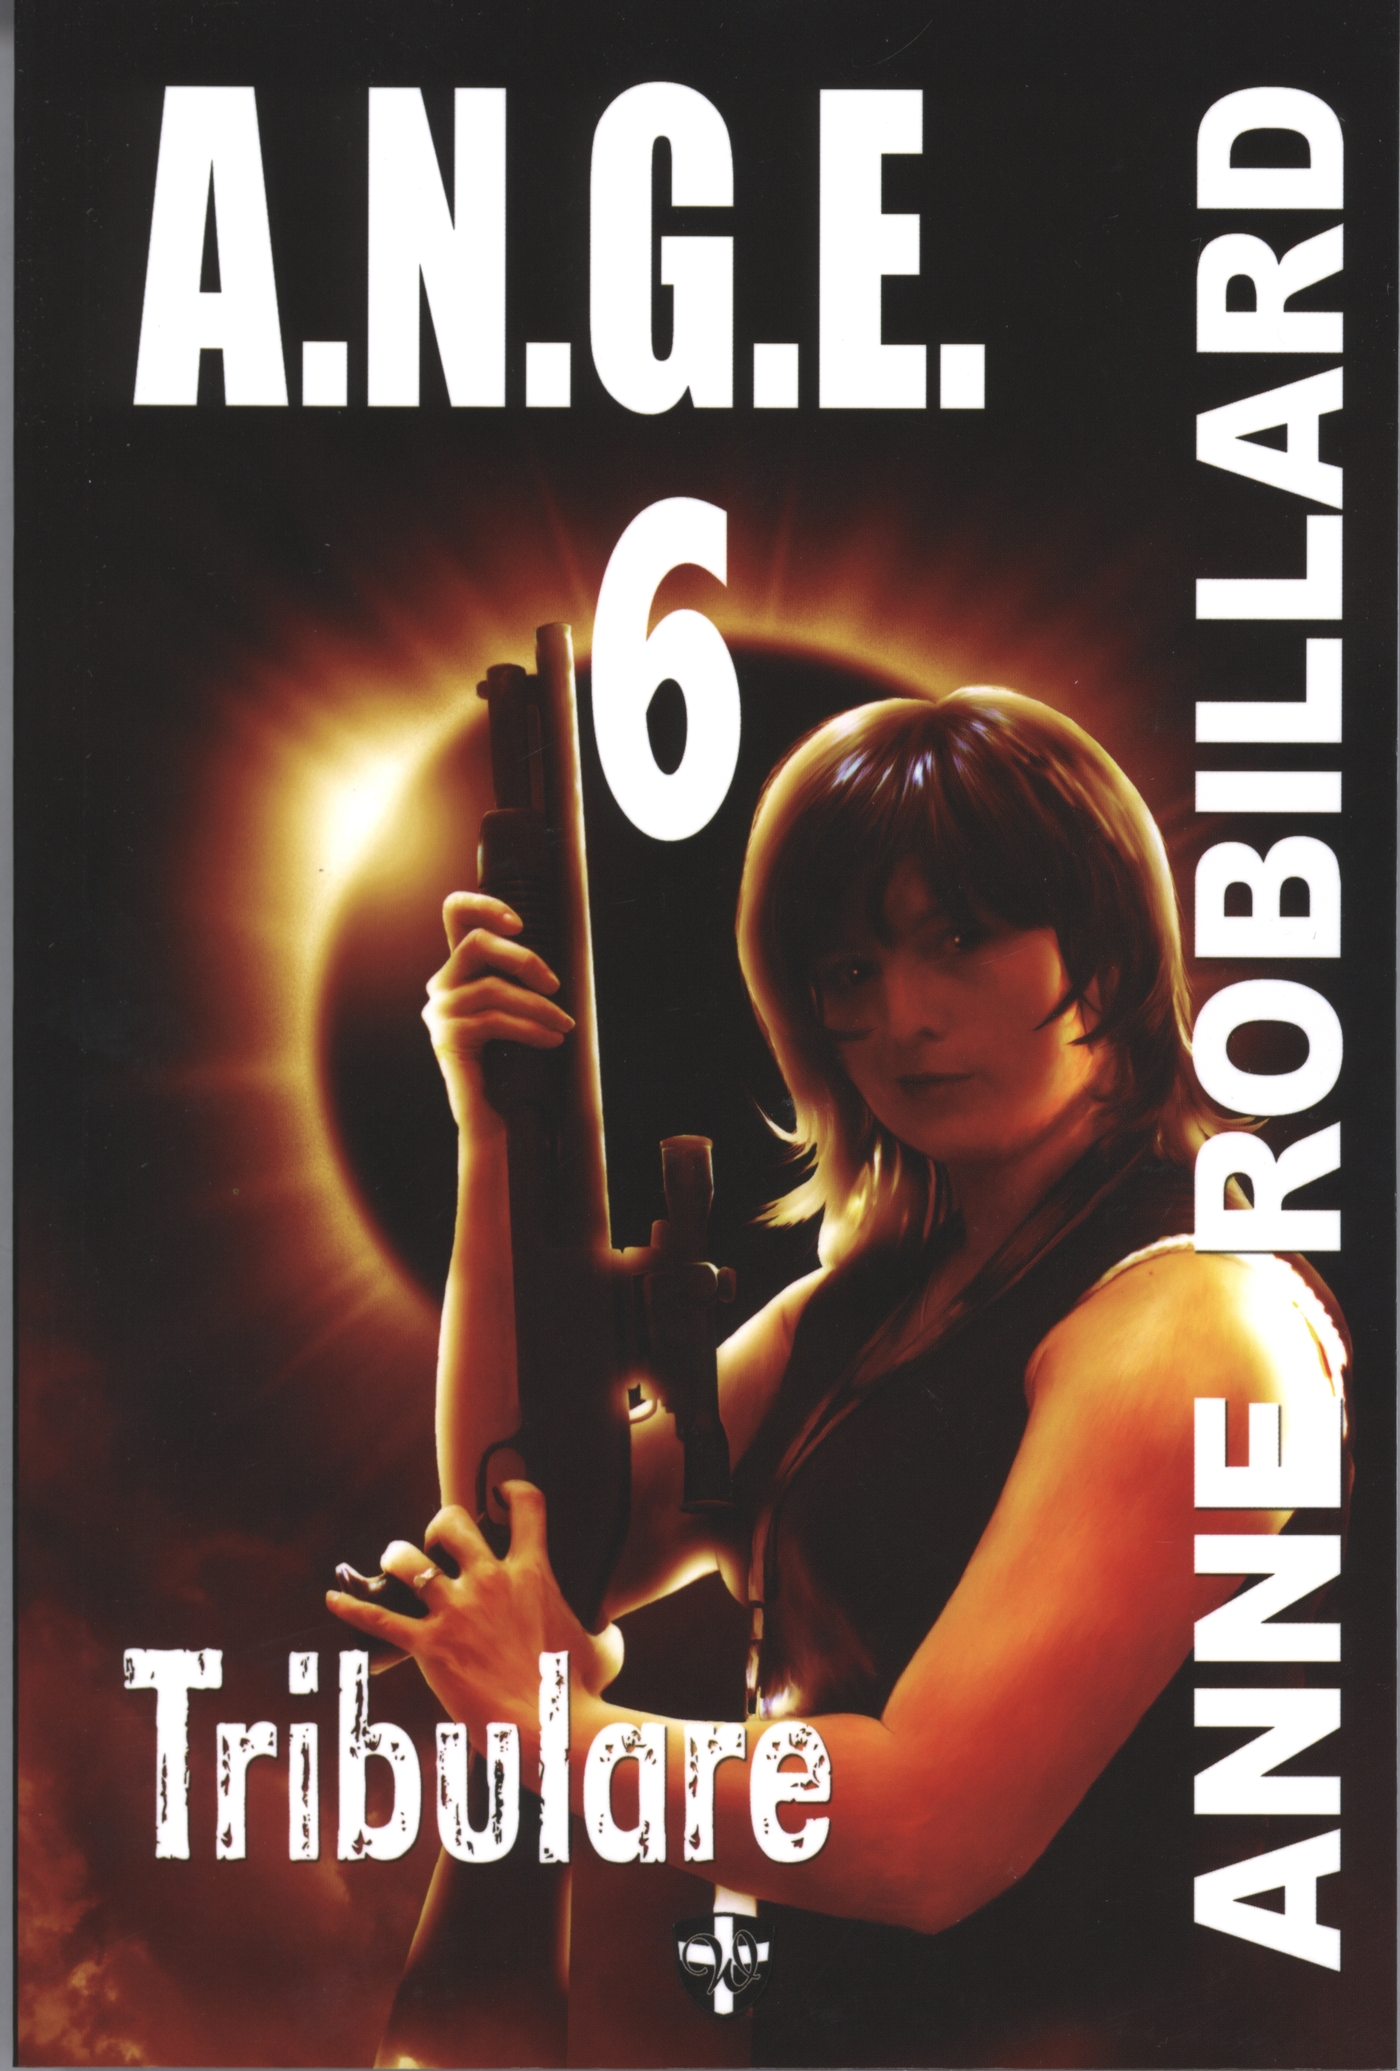 A.N.G.E. 06 : Tribulare